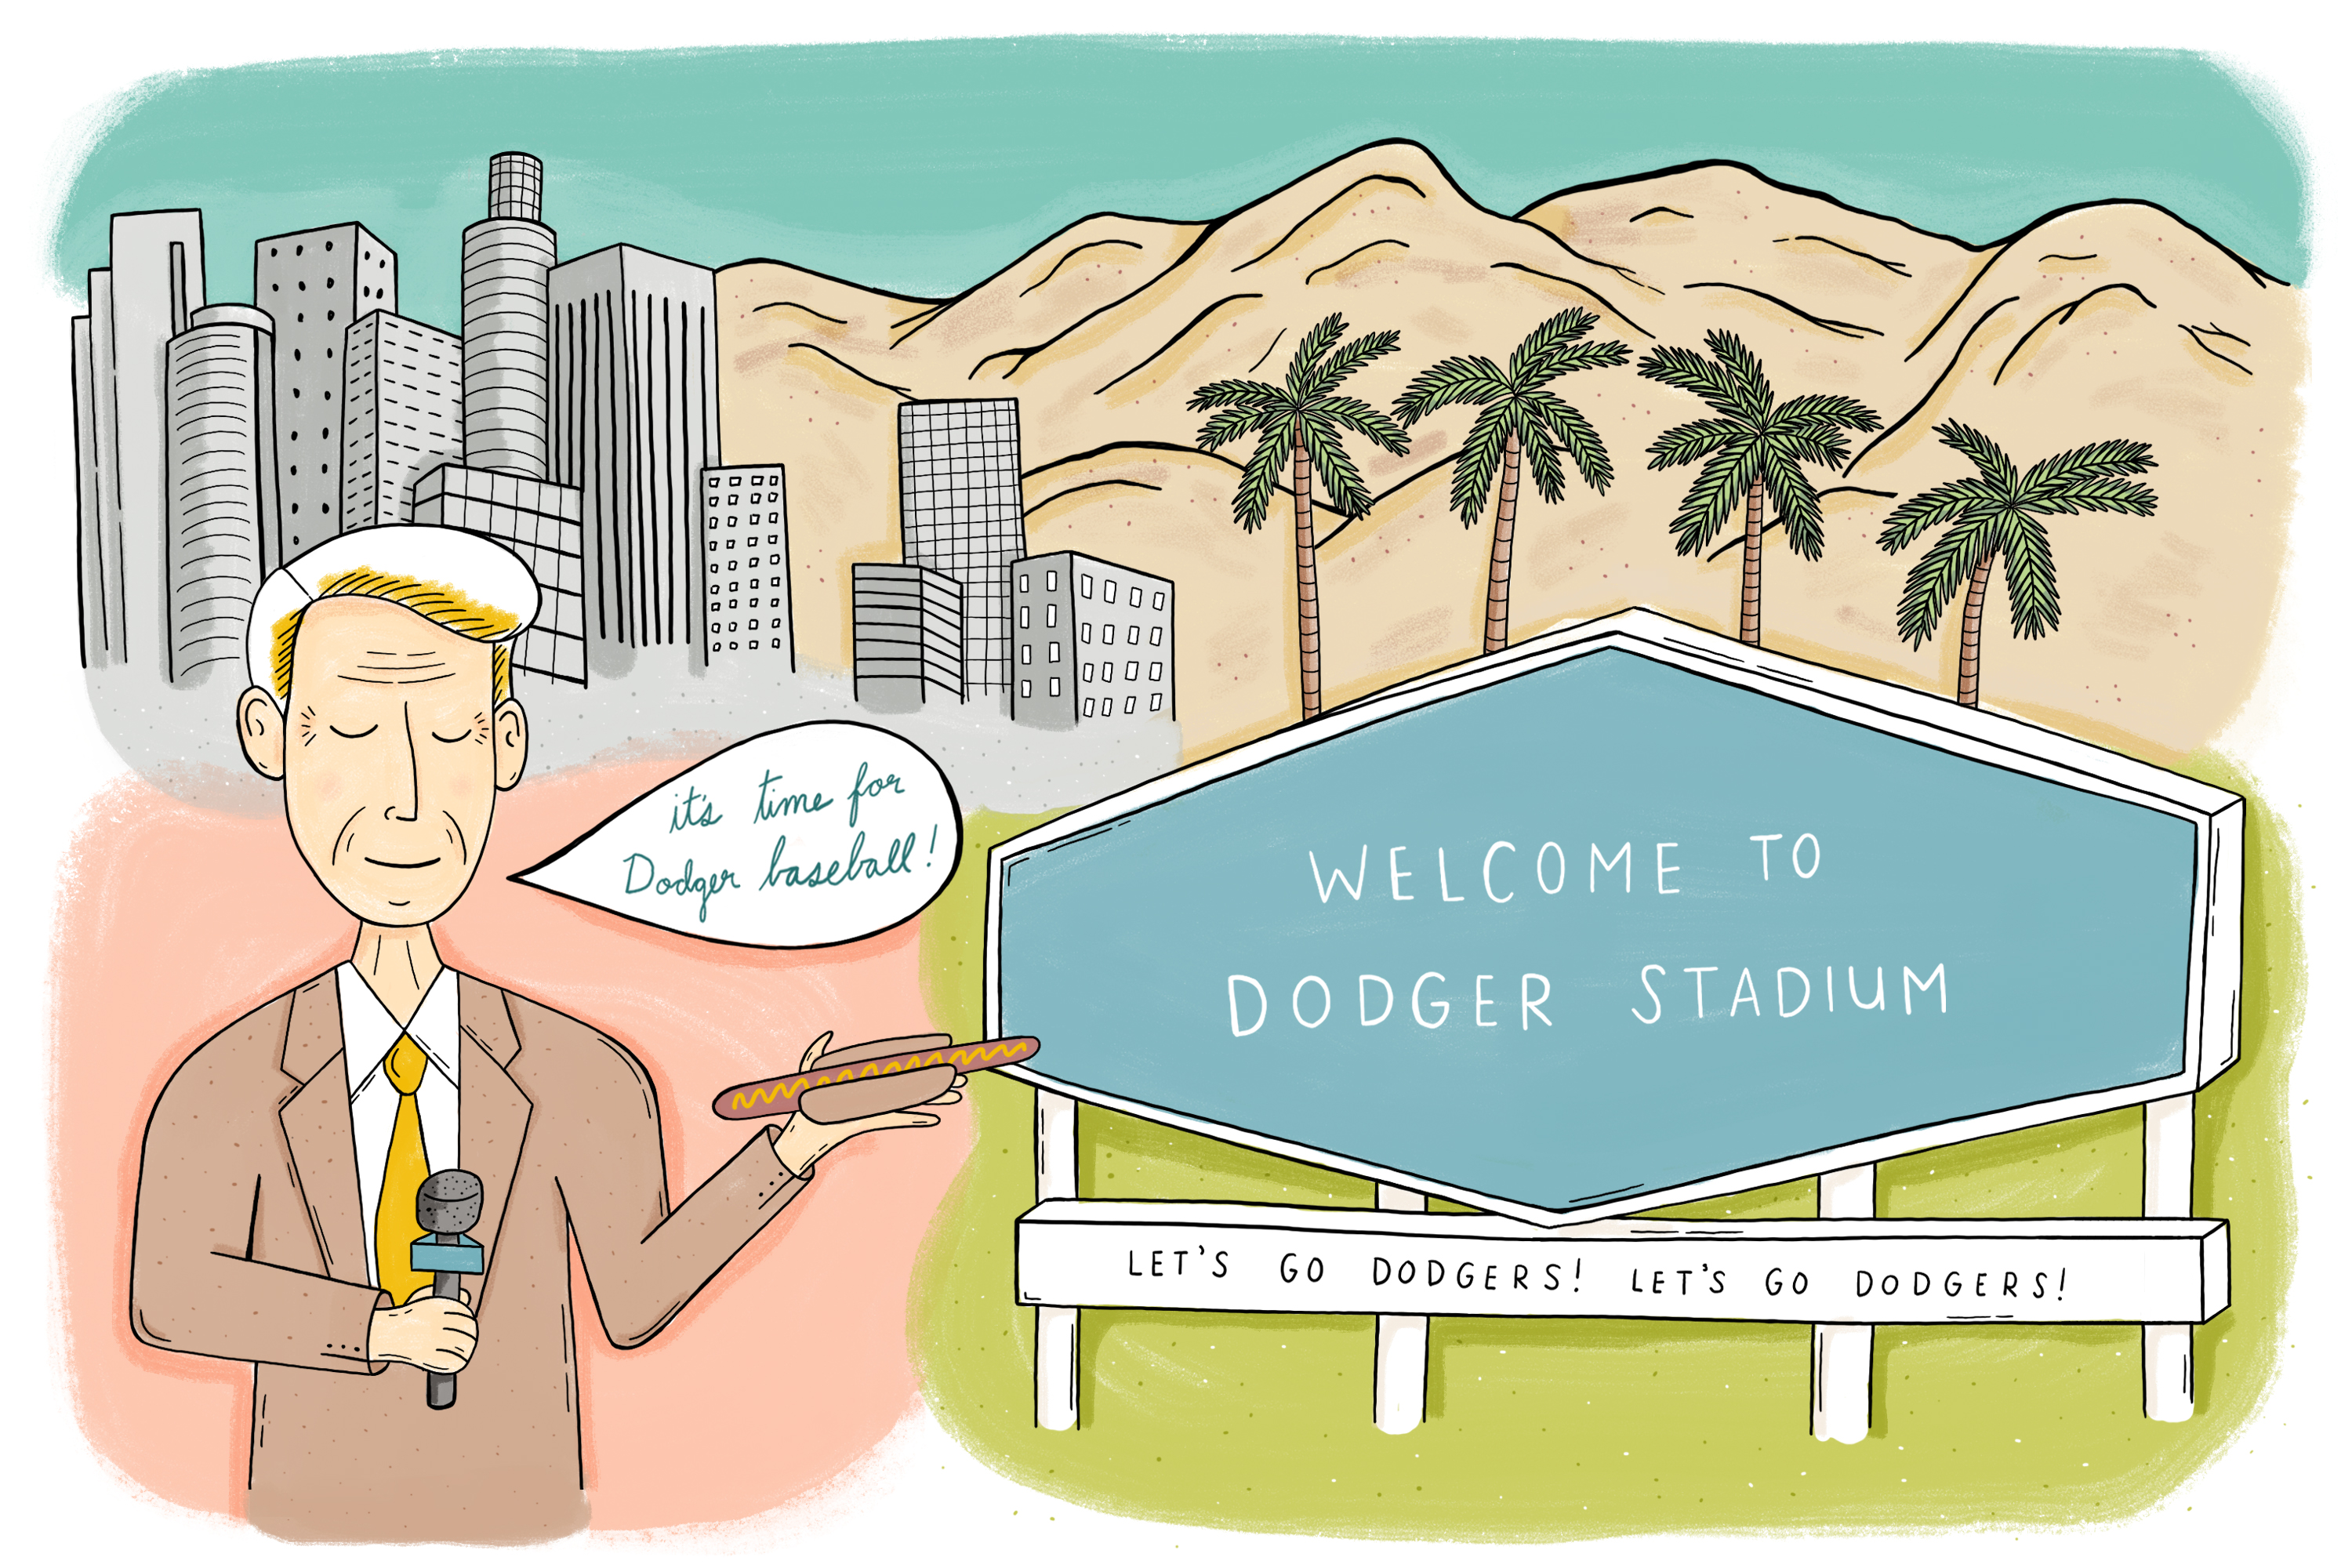 An illustration that captures the spirit of Dodger stadium with a drawing of Vin Scully holding a hotdog, next to the hexagonal-shaped score board, both are framed by the Downtown skyline, San Gabriel Mountains, and palm trees.